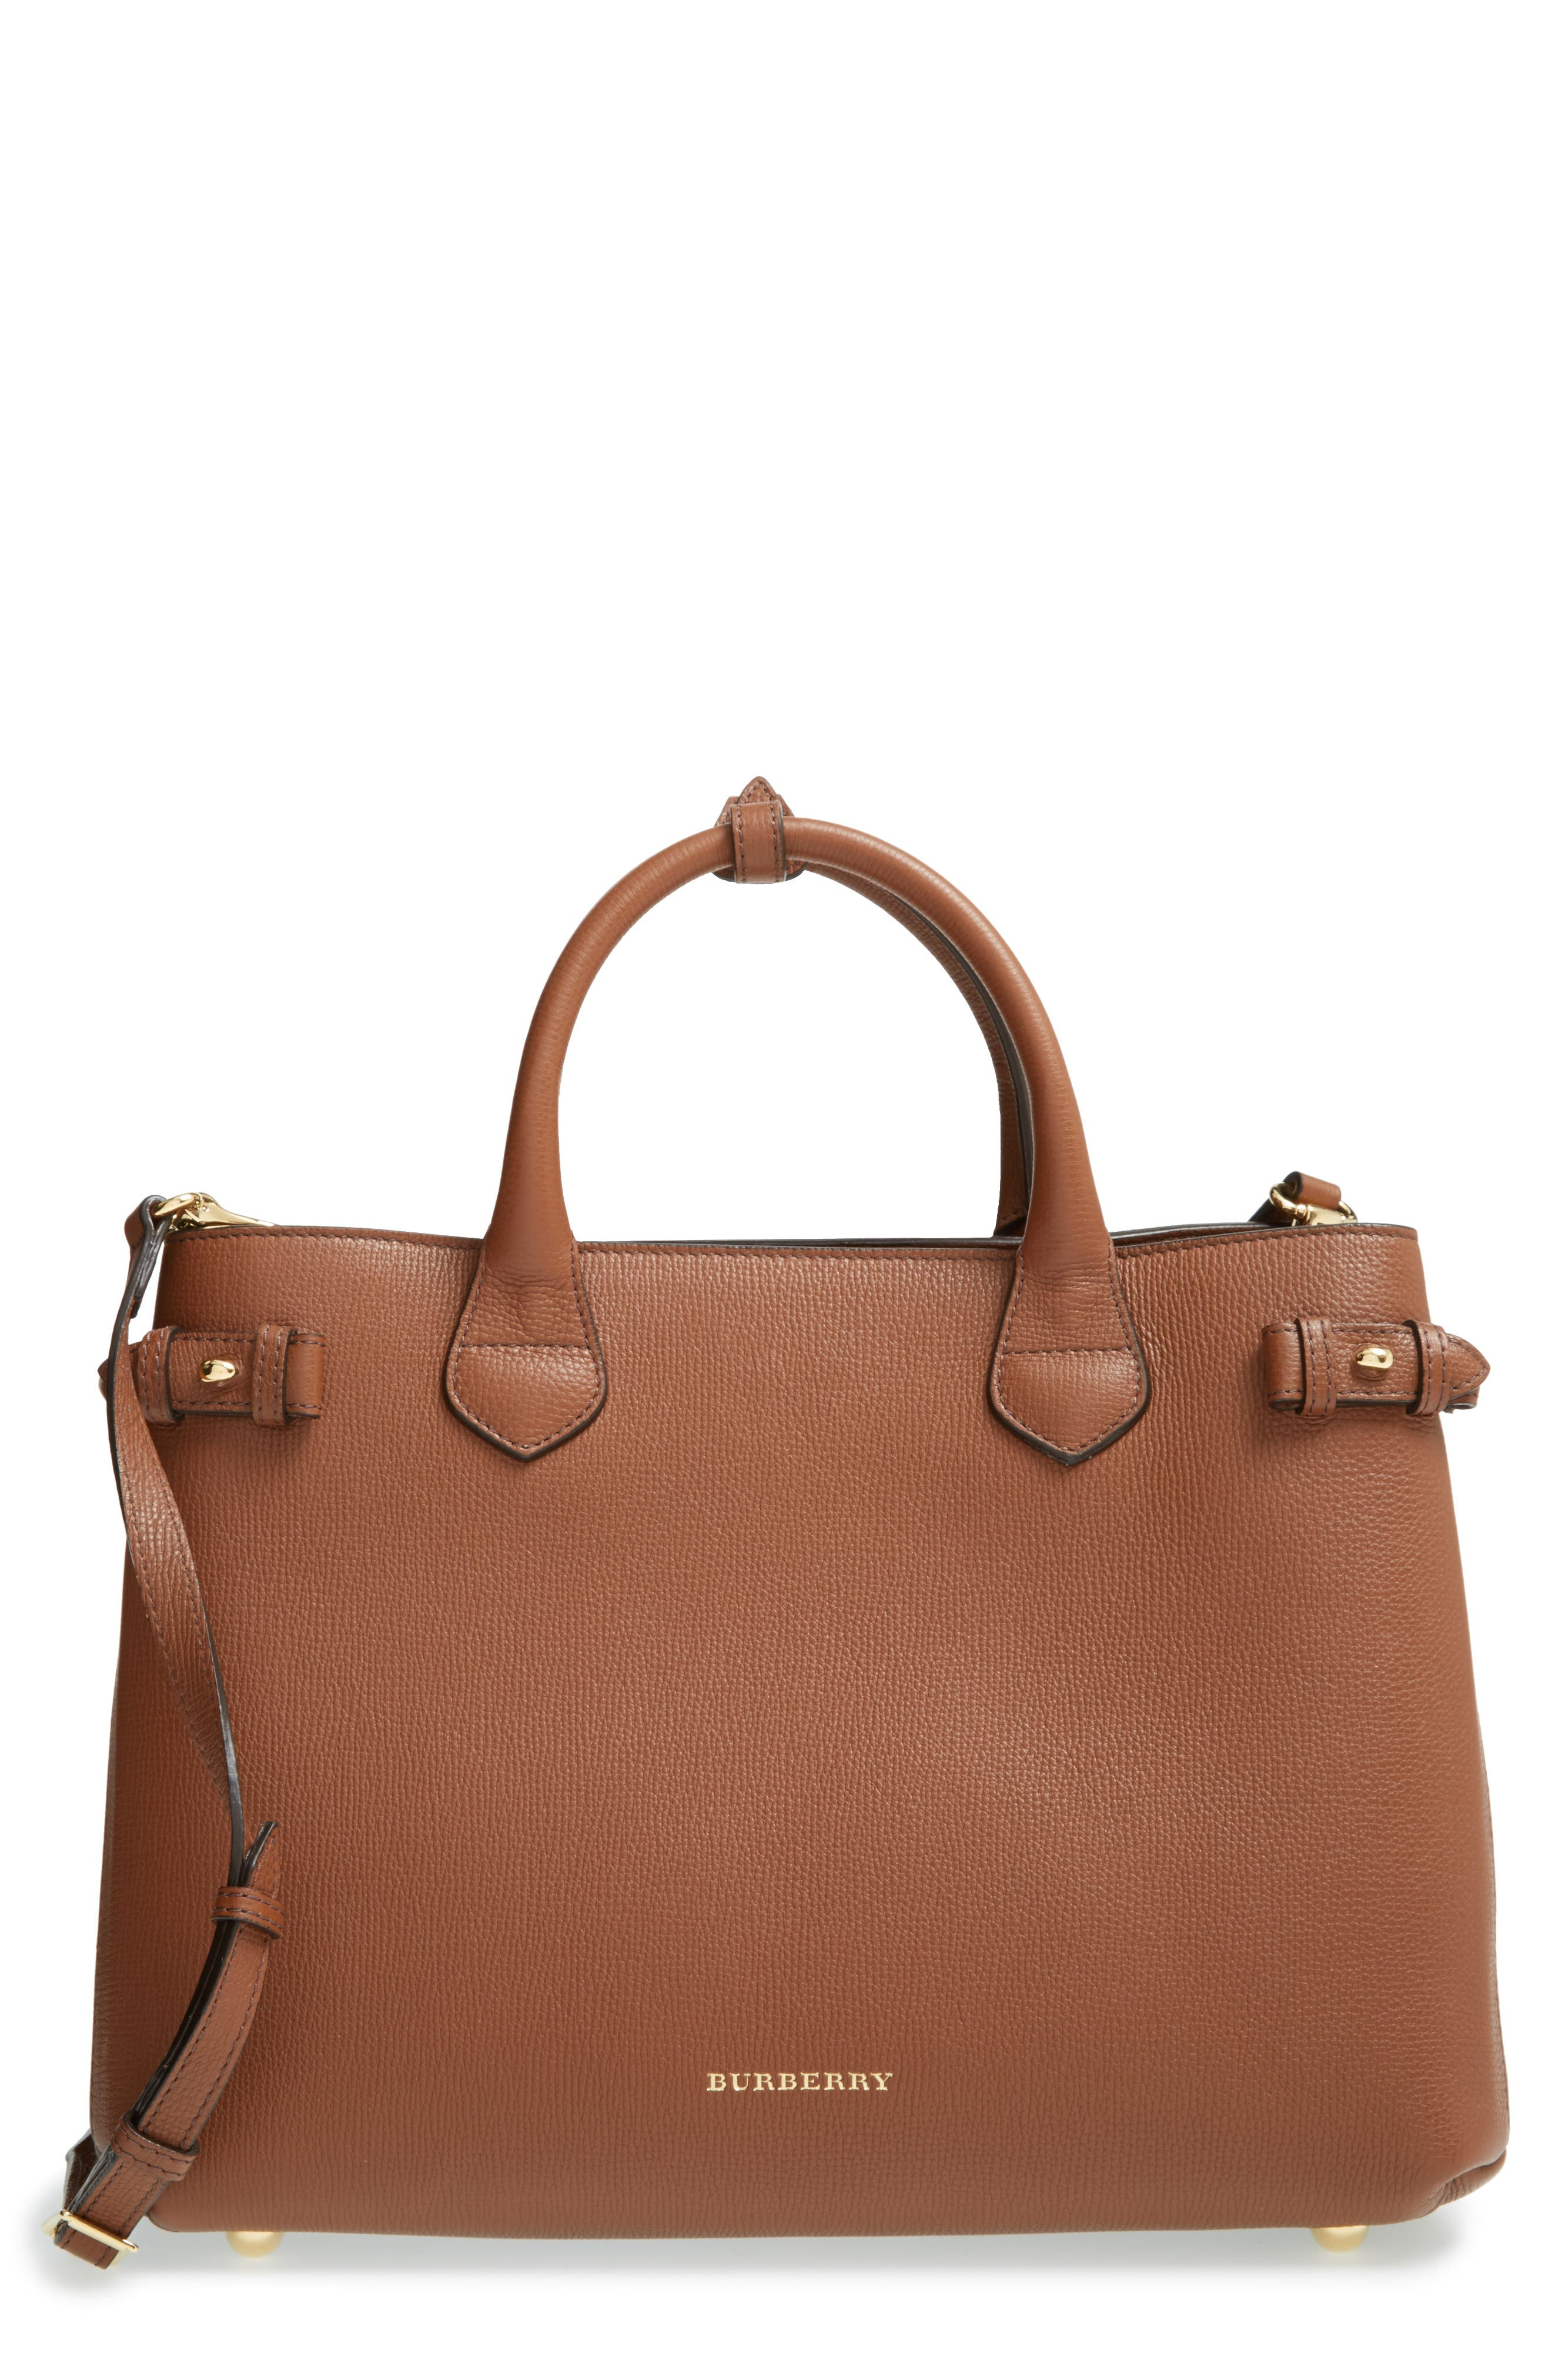 Medium Banner House Check Leather Tote,                             Main thumbnail 1, color,                             251